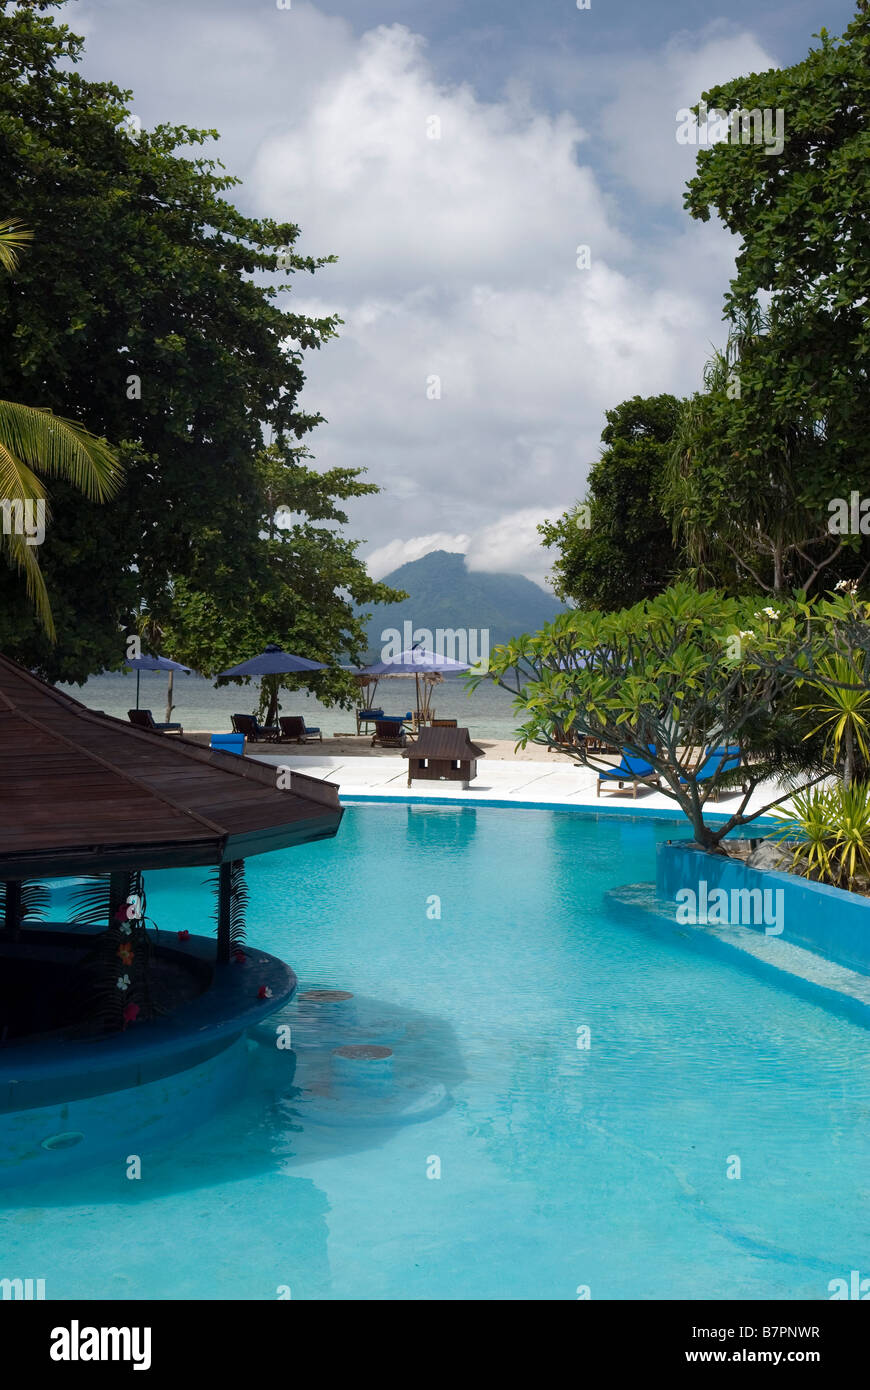 Siladen Island Resort and Spa, Sulawesi - Stock Image